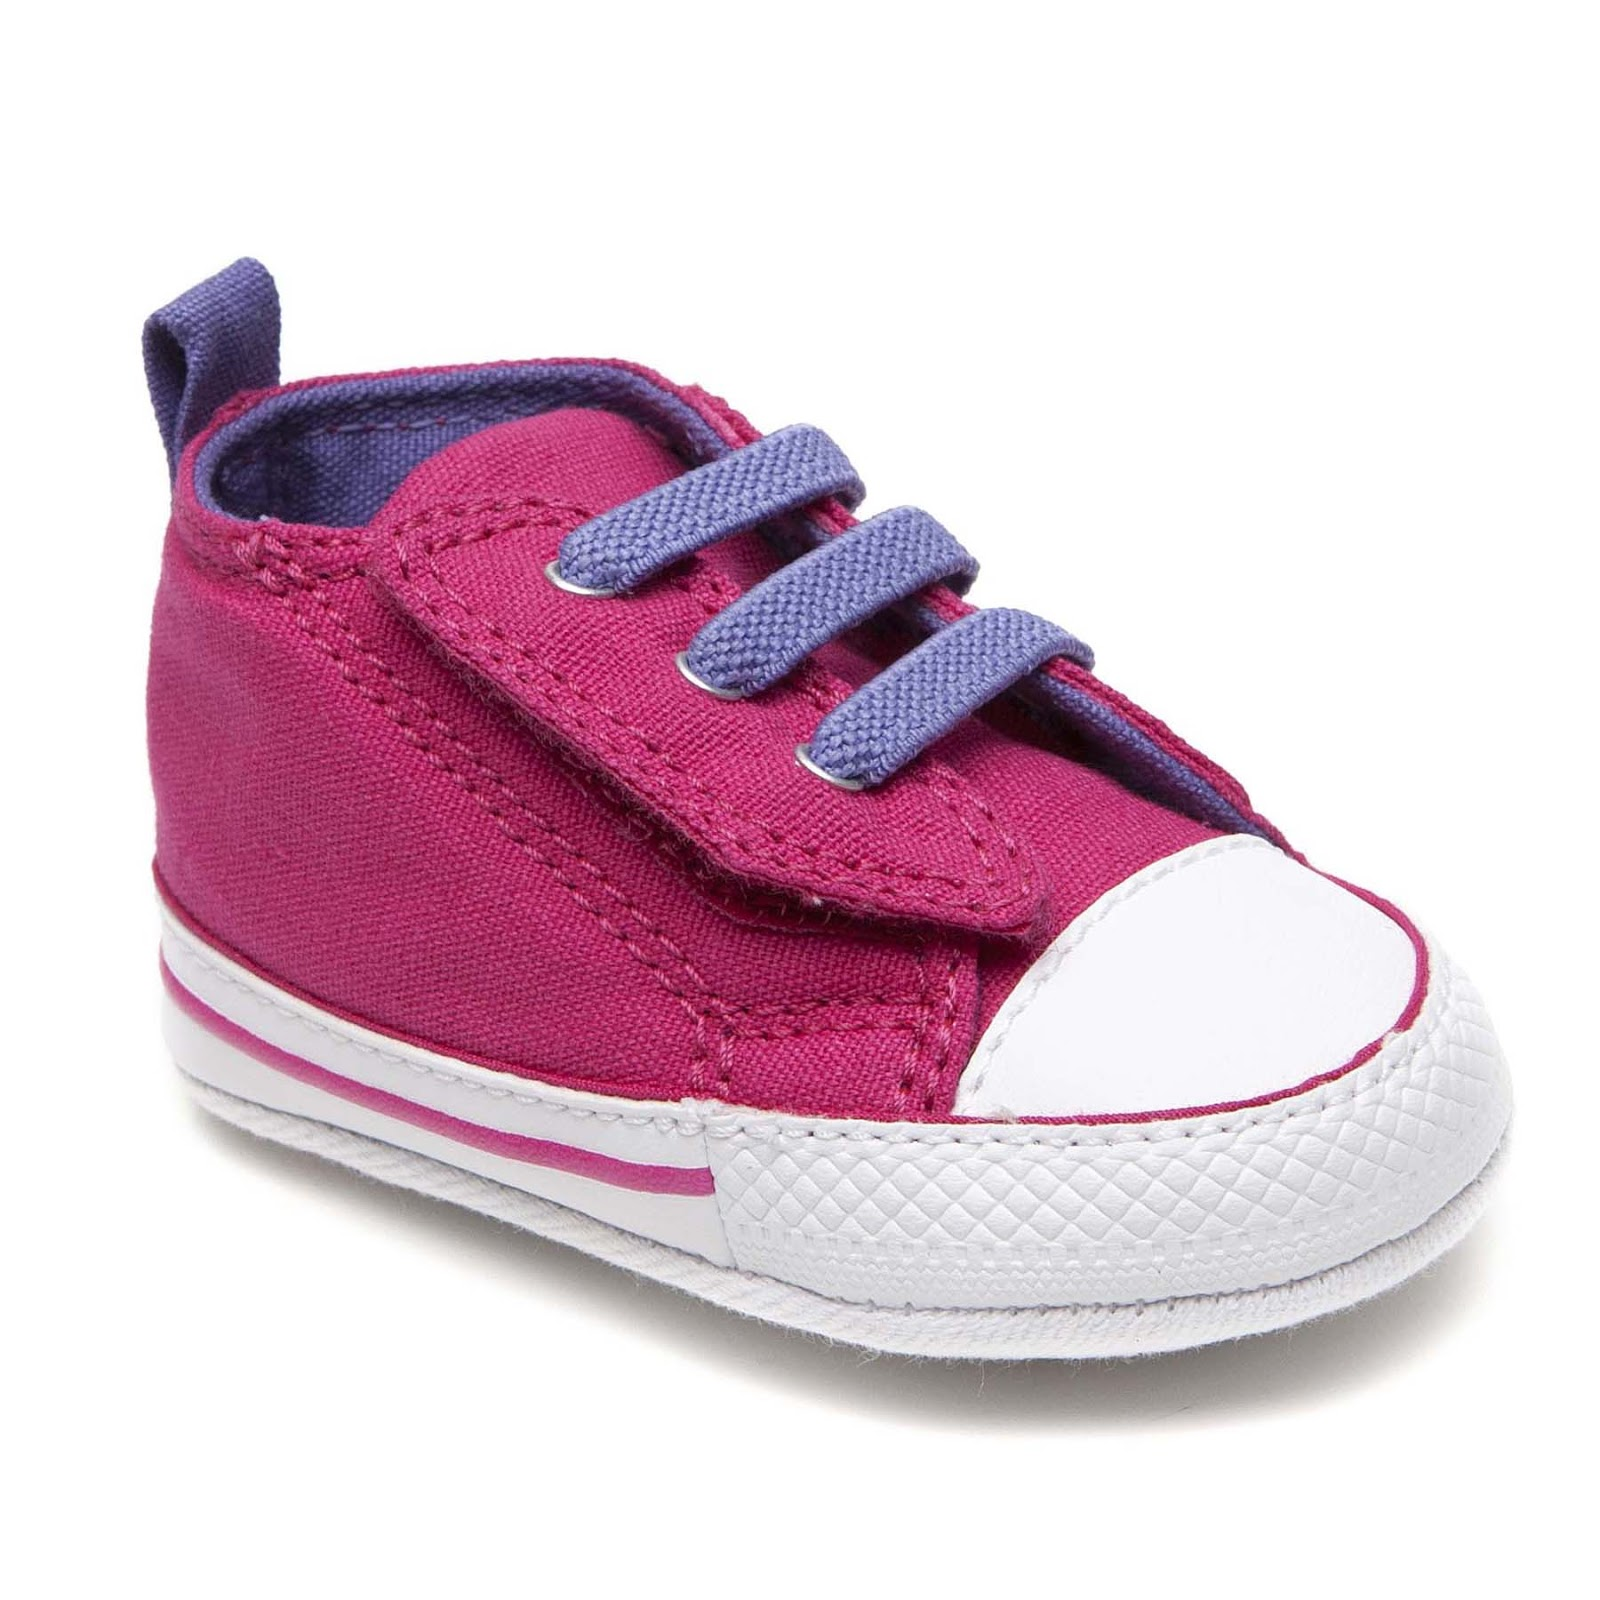 d6450c22b474 Converse ® FIRST STAR CRIB